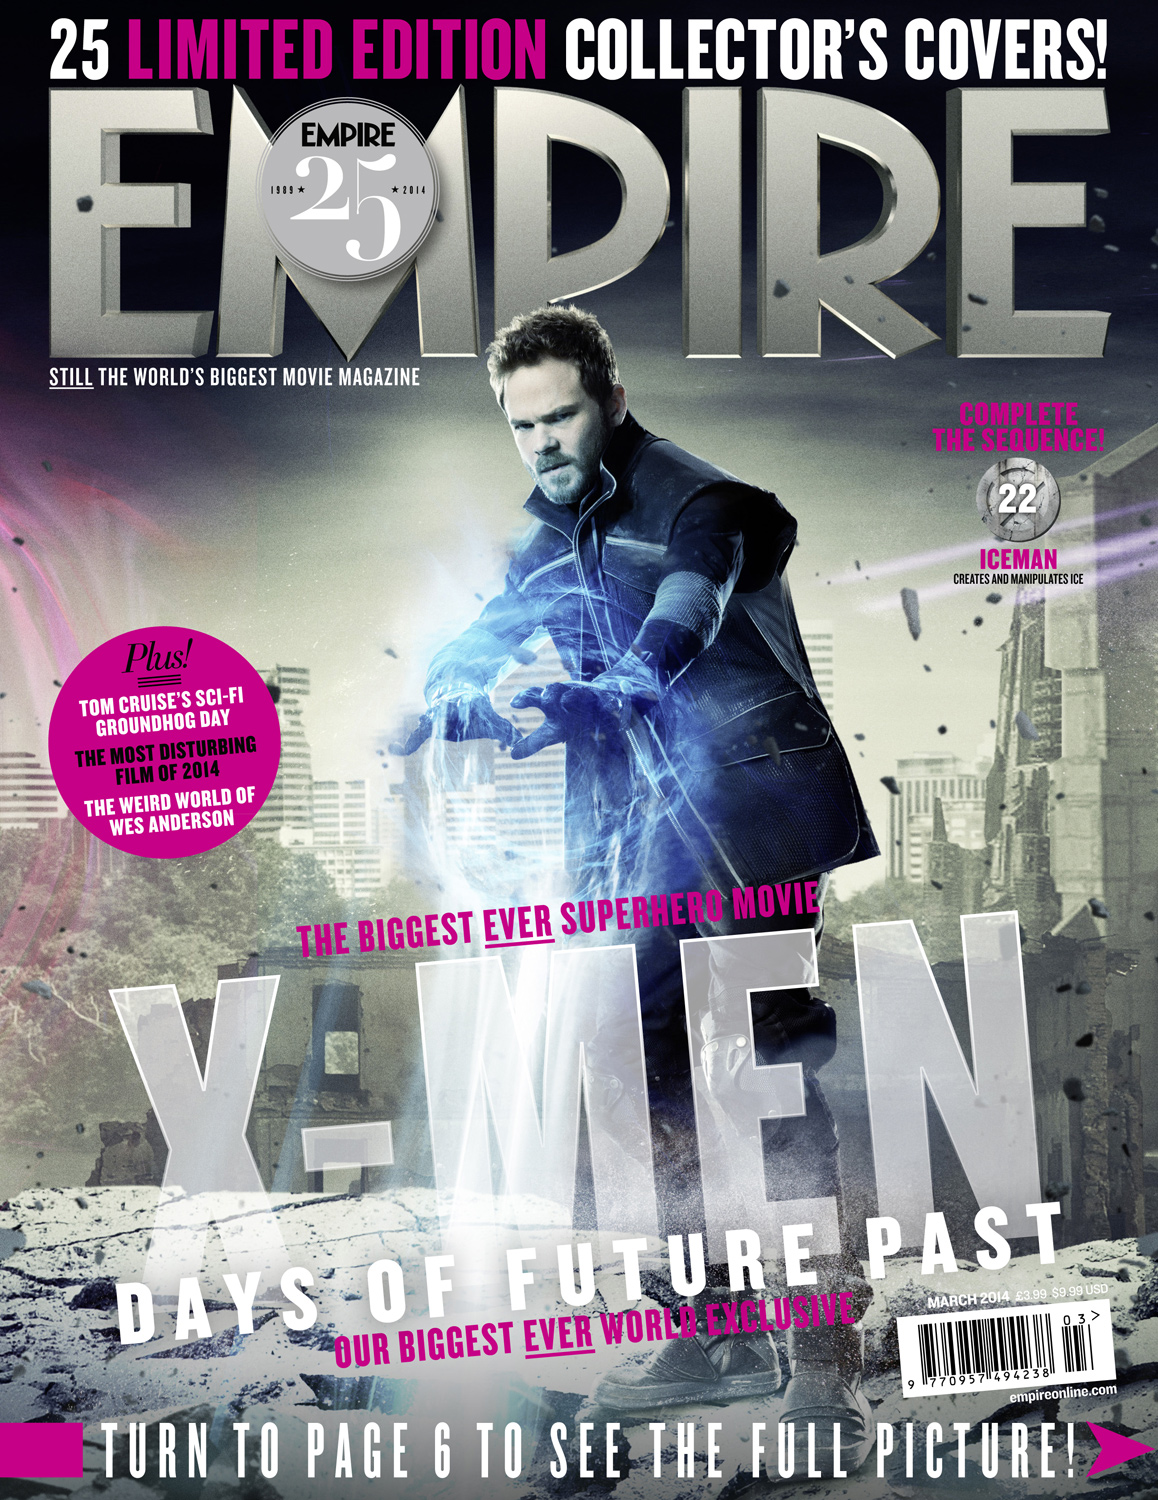 Empire - XDOFP Cover - 022 - Iceman